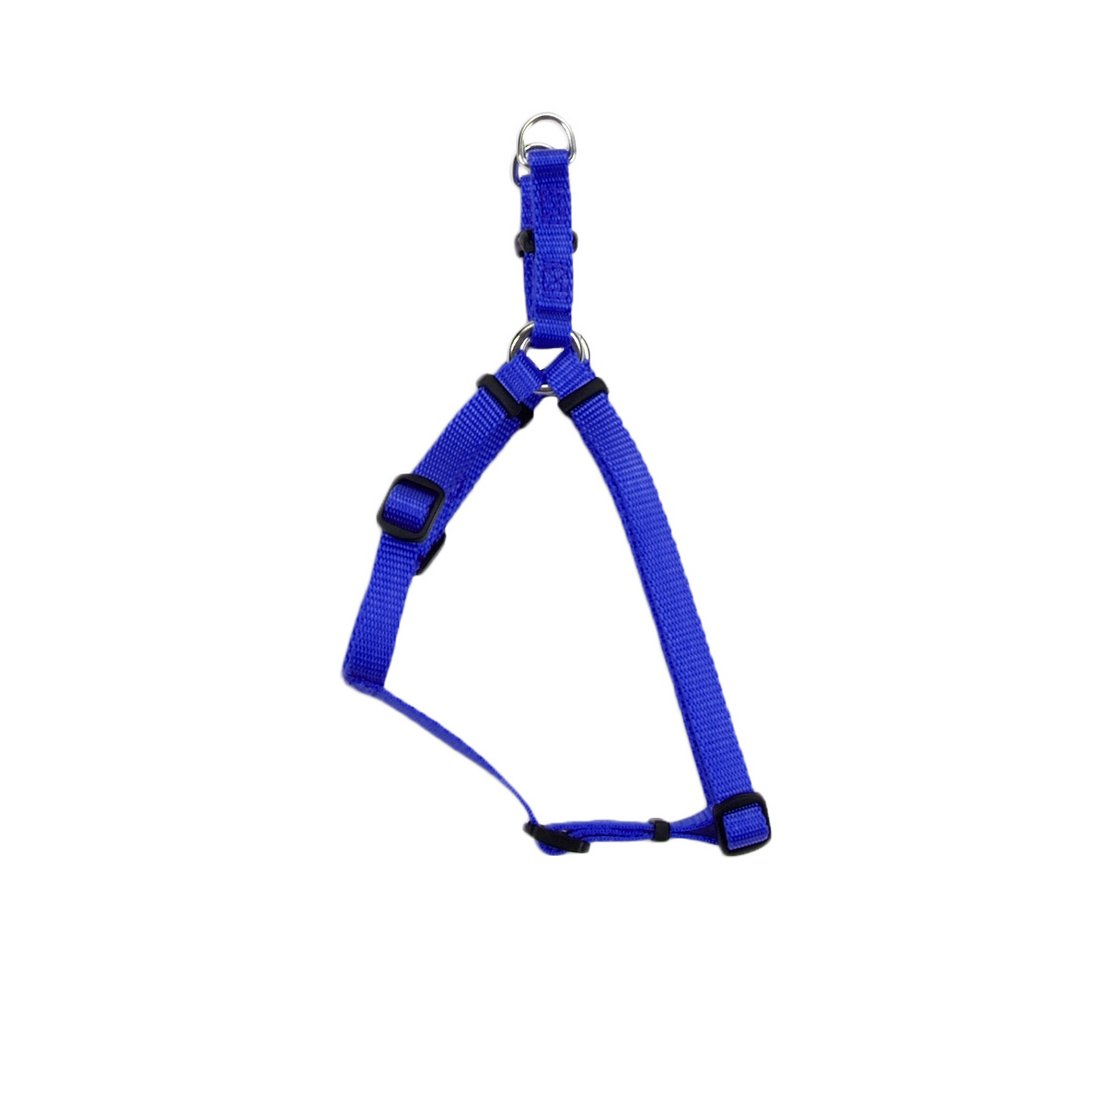 coastal-comfort-harness-5-8-blue